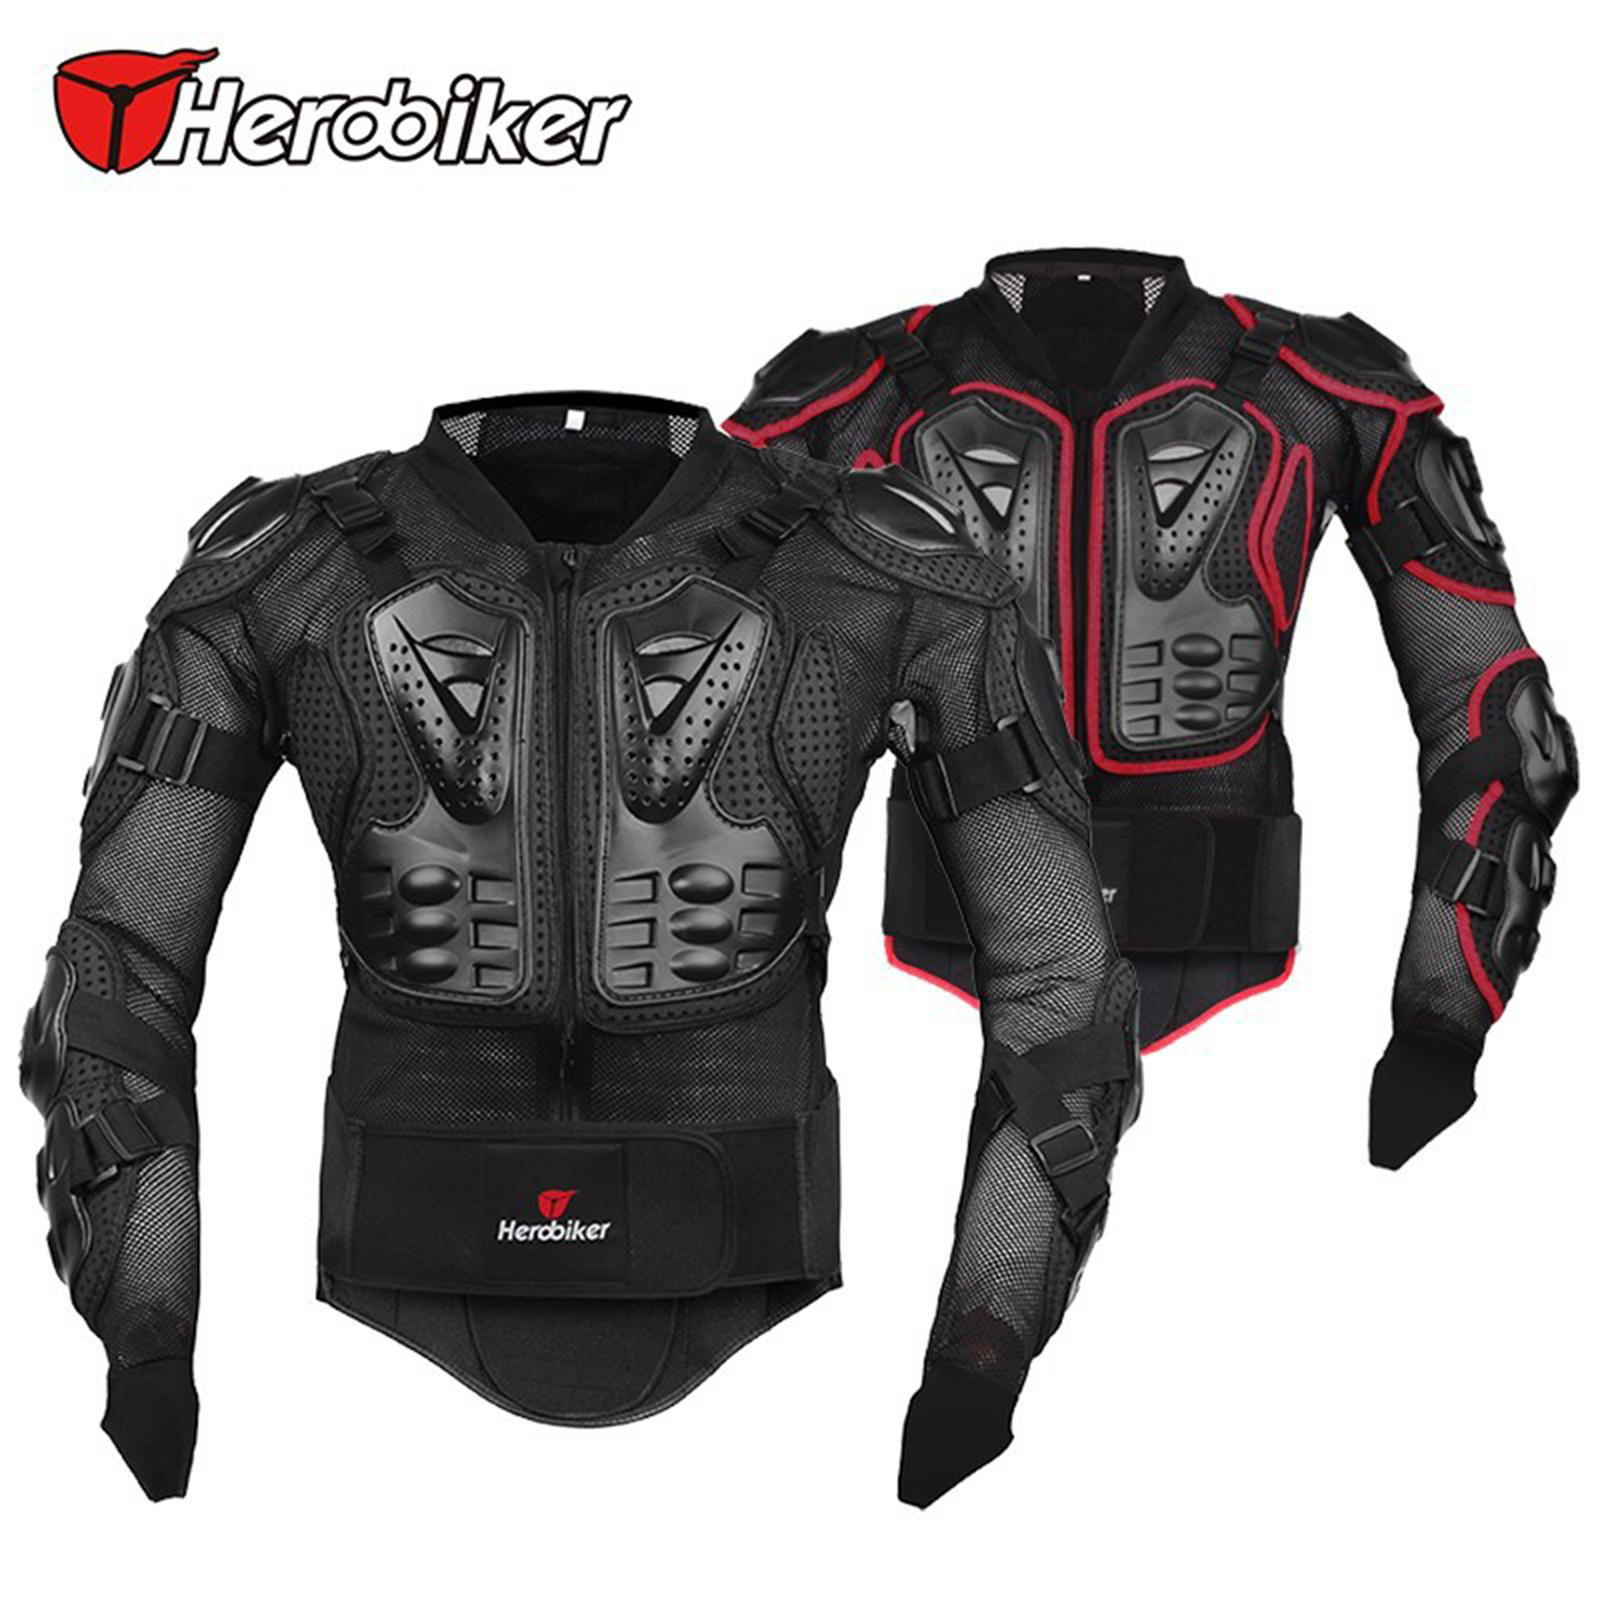 Motorcycle Jacket Men Full Body Motorcycle Armor Motocross Racing Protective Gear Motorcycle Protection Size S-3XL herobiker armor removable neck protection guards riding skating motorcycle racing protective gear full body armor protectors